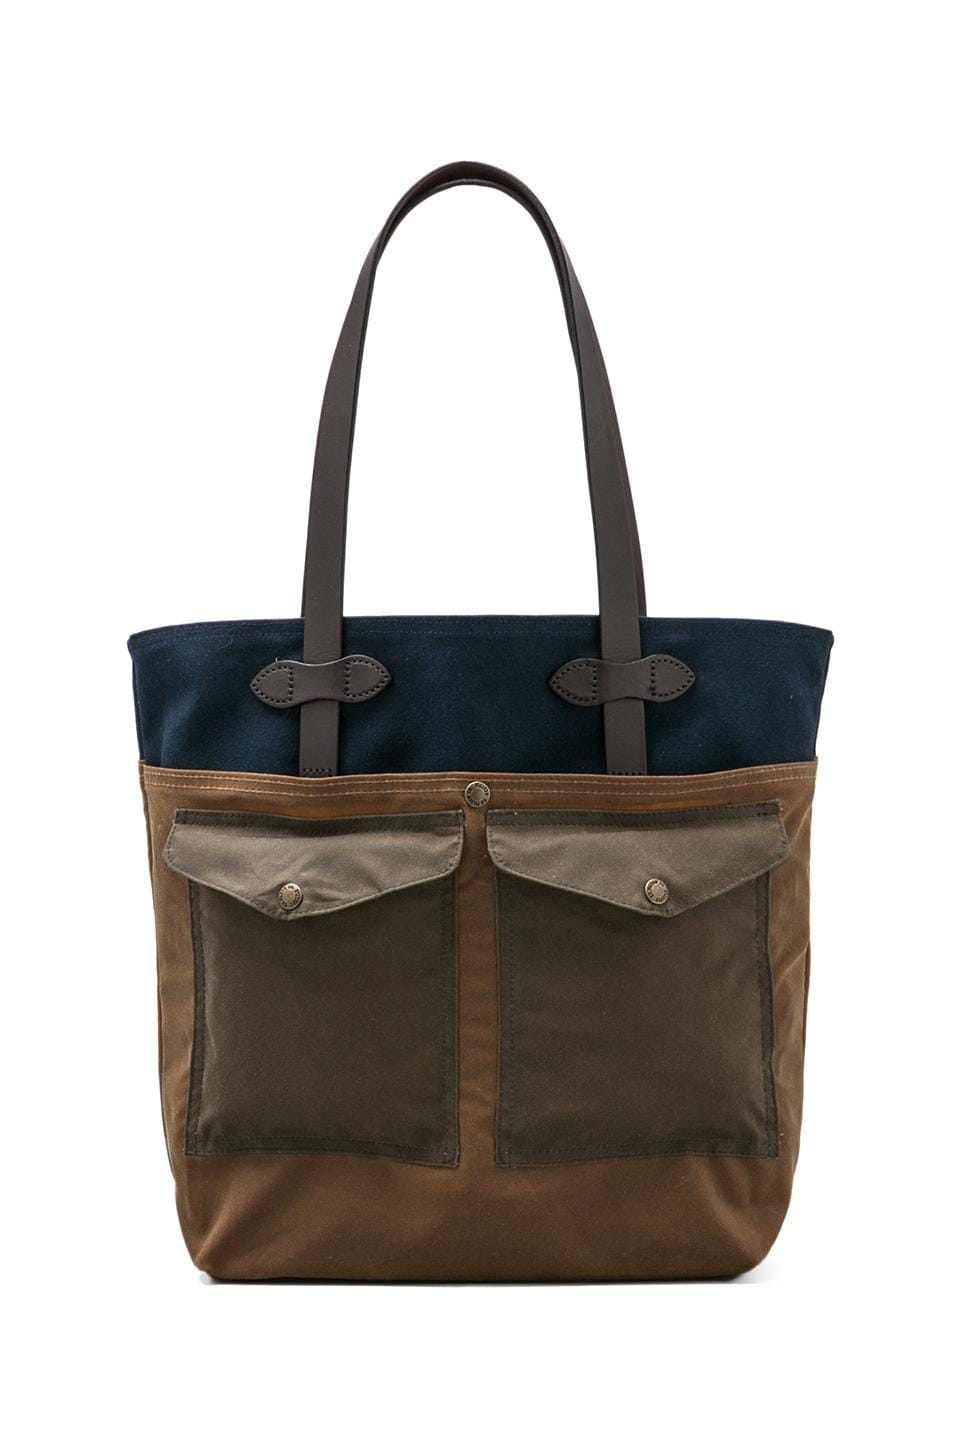 Filson Medium Tote w/ Pockets in Navy &  Dark Tan